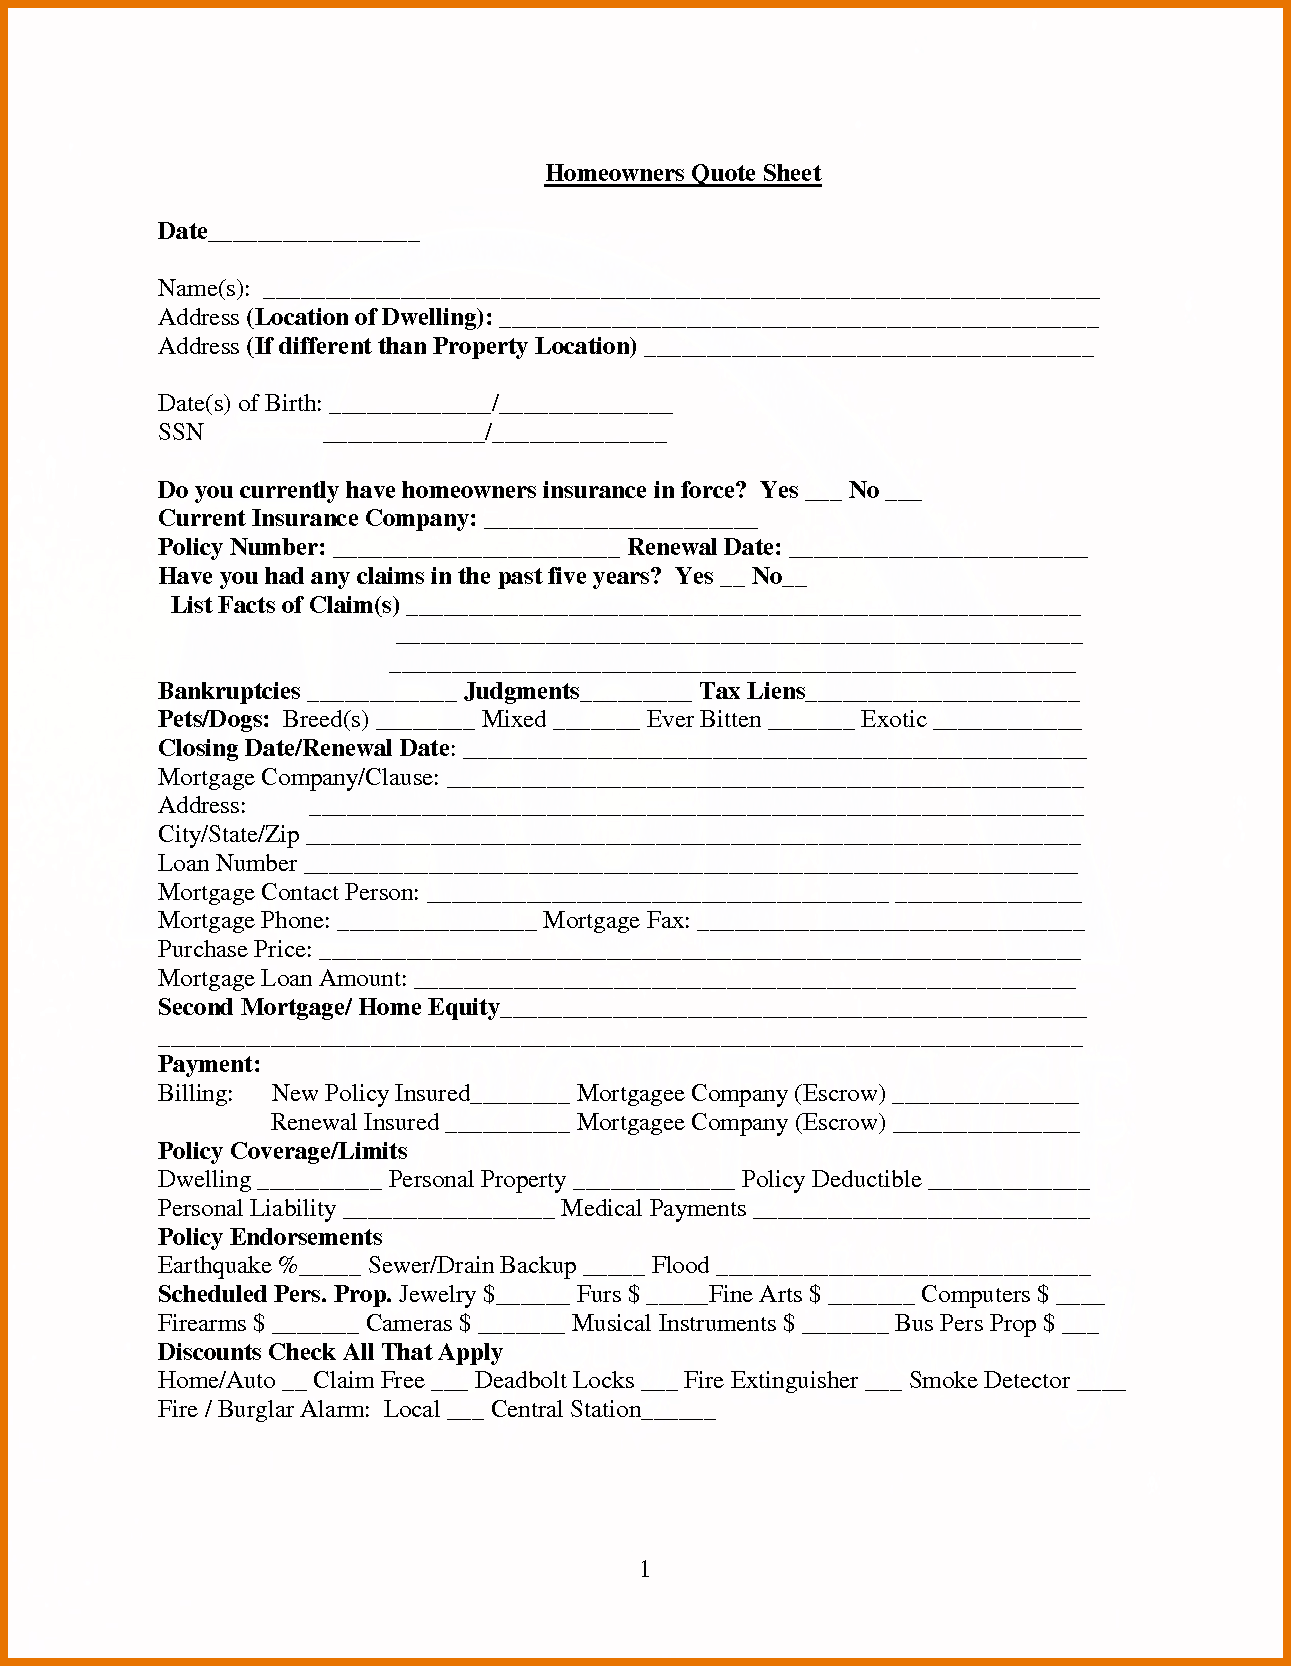 home insurance quote sheet template_8